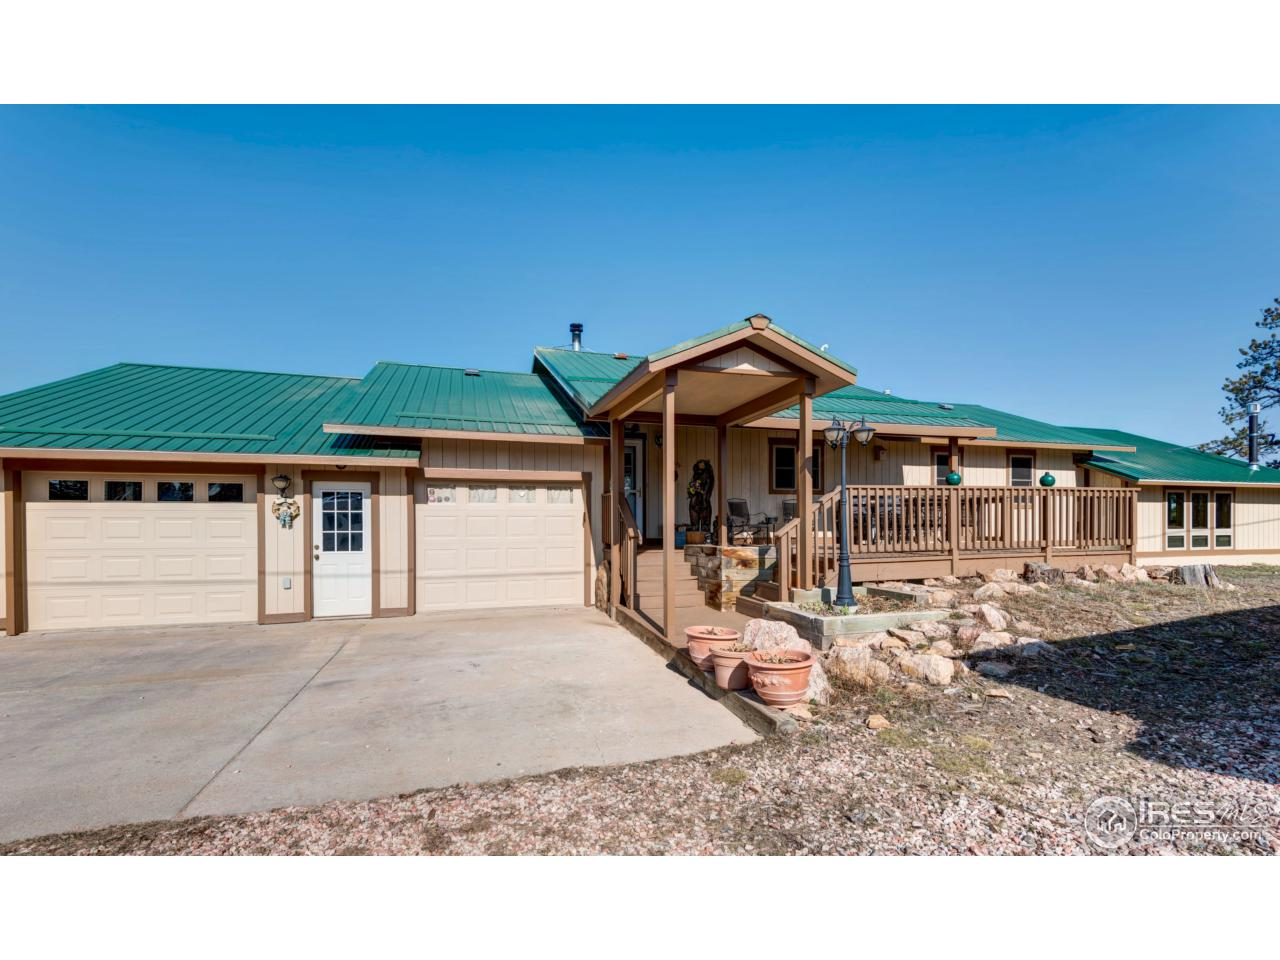 164 Main St, Red Feather Lakes, CO 80545